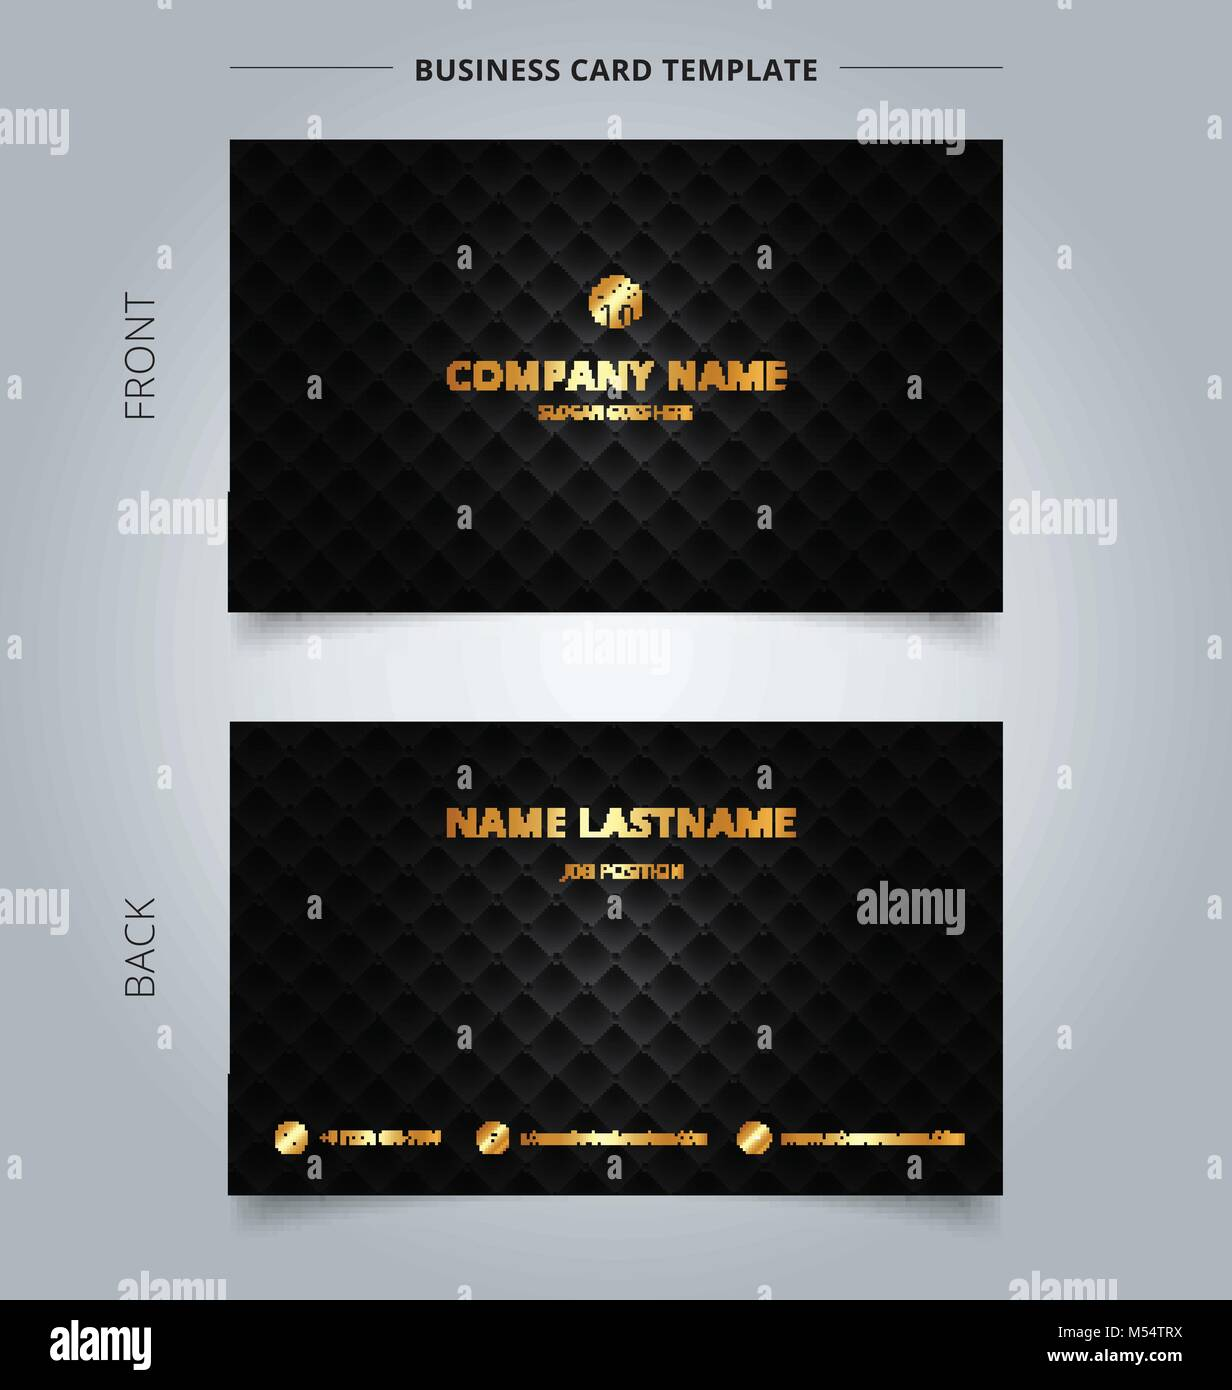 Creative business card and name card template blue and white with creative business card and name card template blue and white with lines horizontal abstract concept and commercial design vector graphic illustratio reheart Choice Image